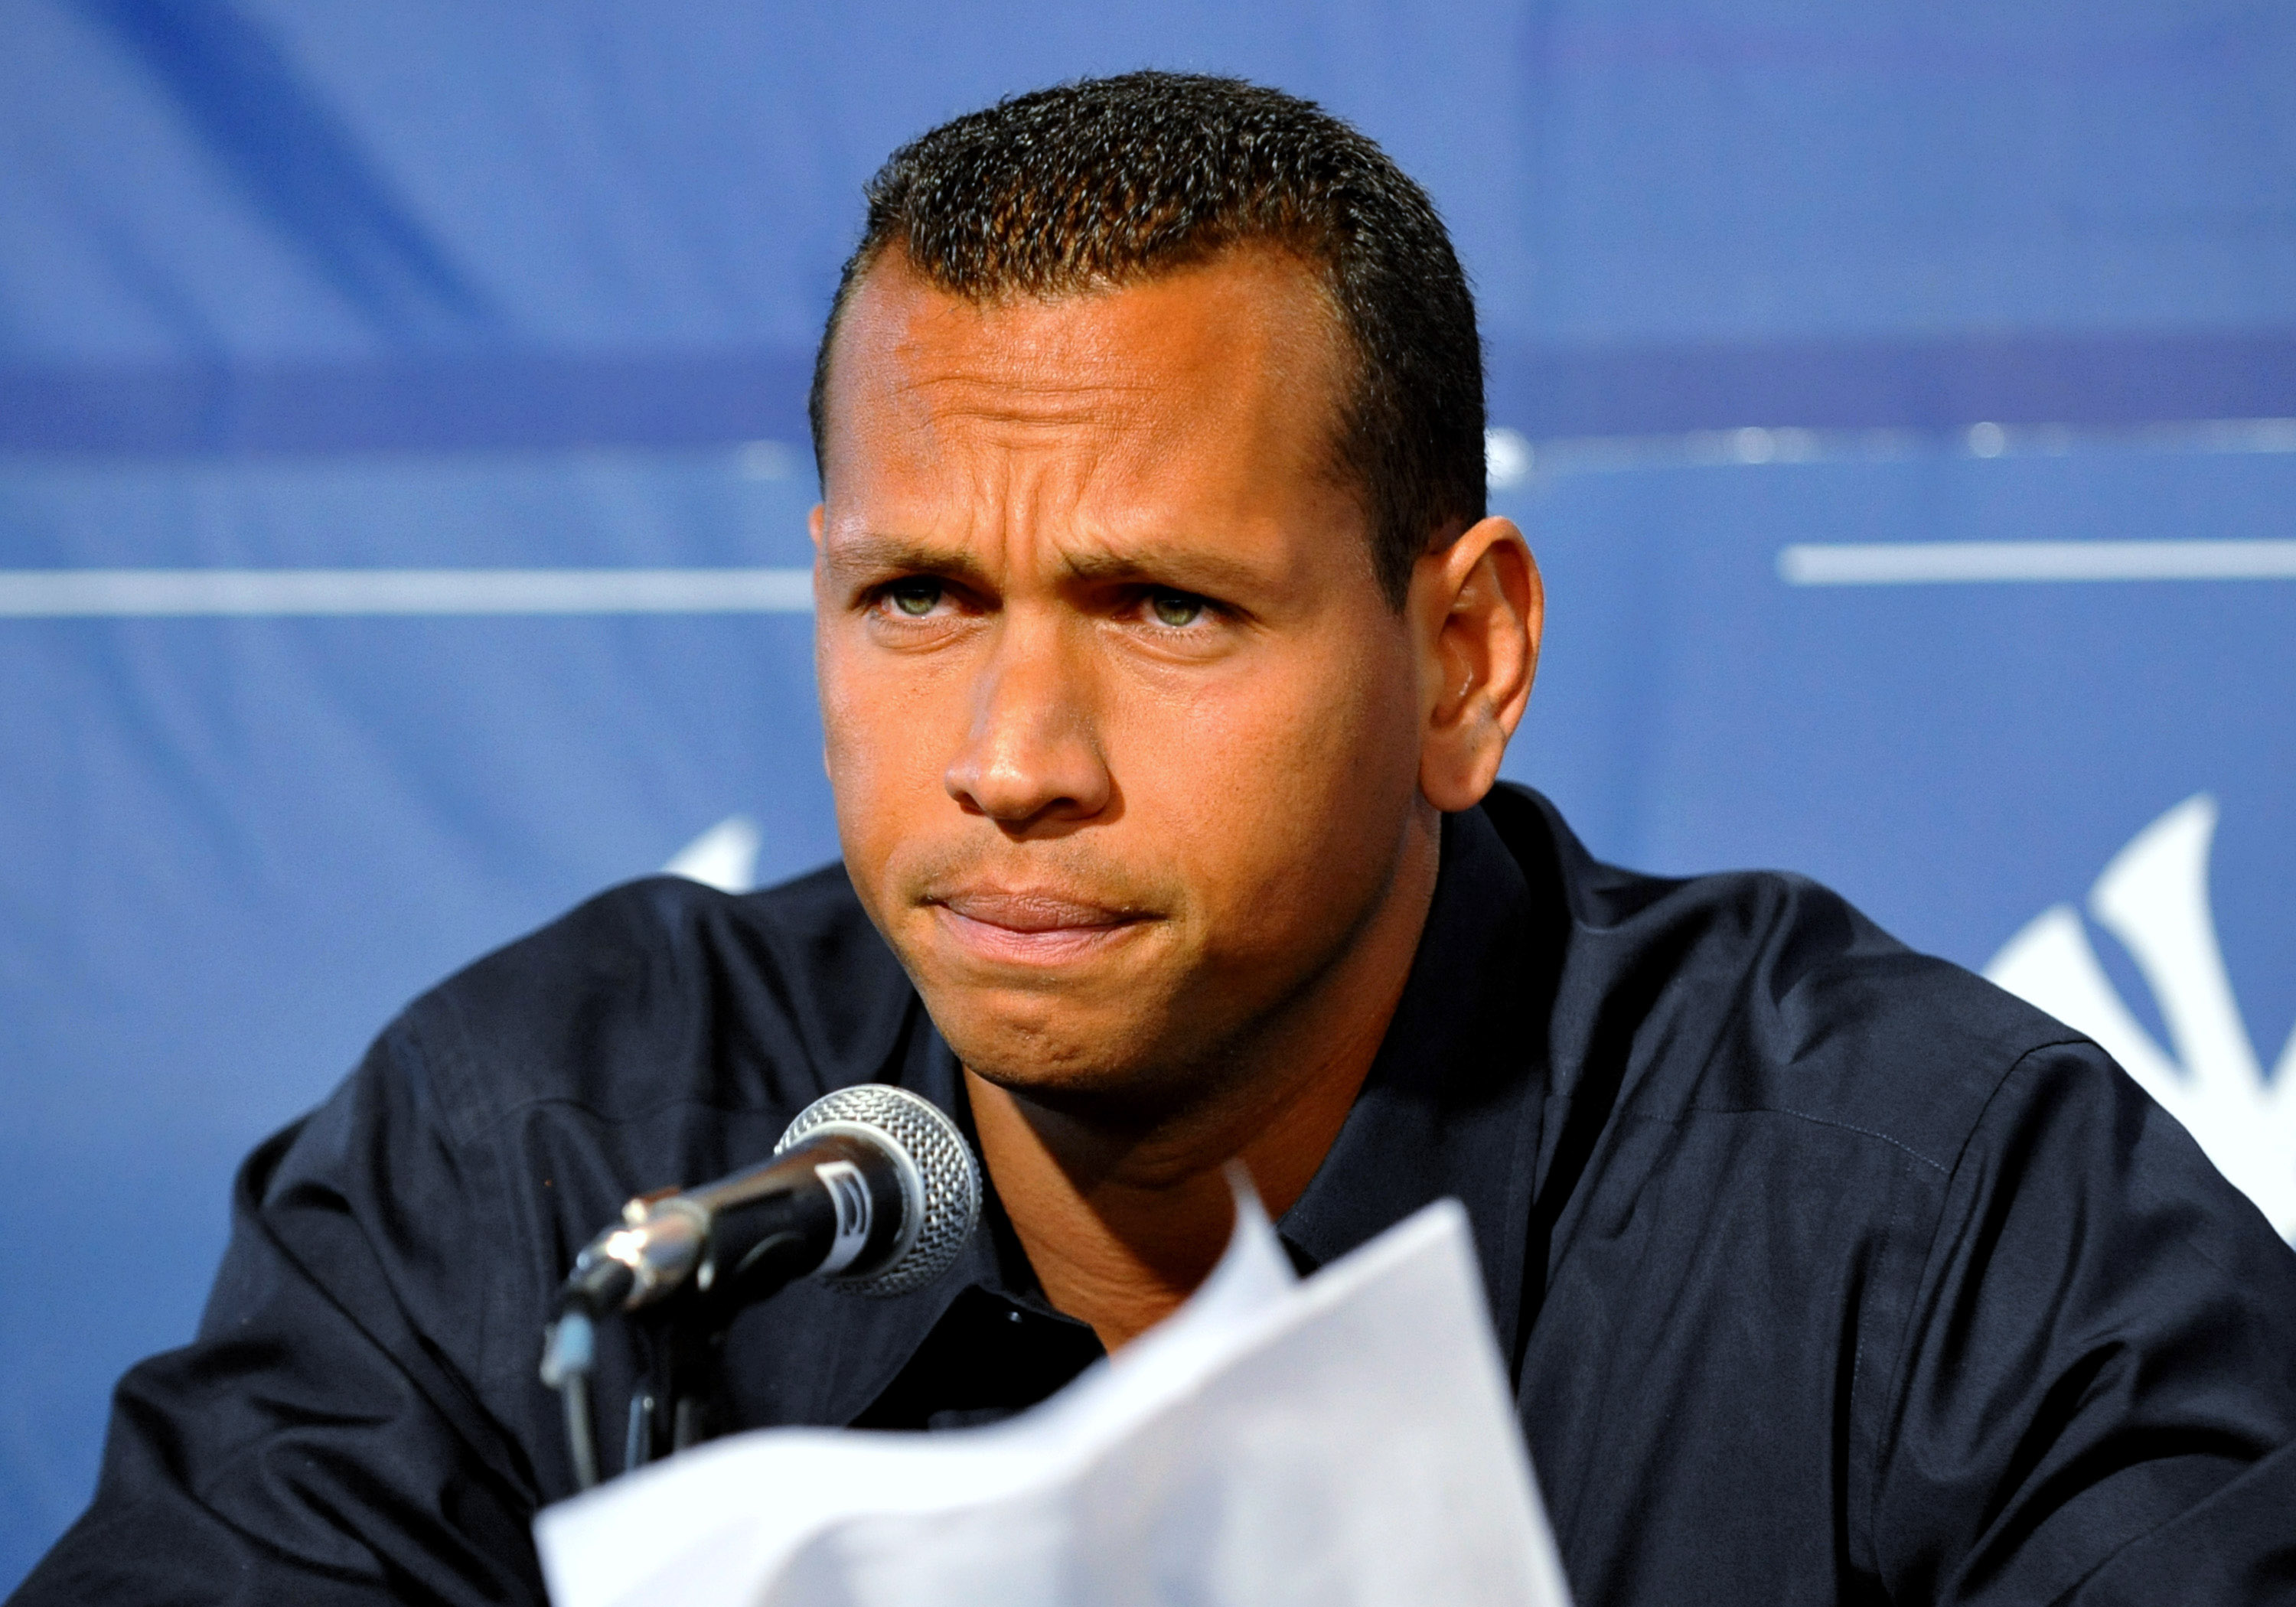 TAMPA - FEBRUARY 17: Infielder Alex Rodriguez of the New York Yankees talks during a press conference February 17, 2008 at the George M. Steinbrenner Field in Tampa, Florida. The Yankees third baseman admitted to taking a substance known as 'boli' acquire